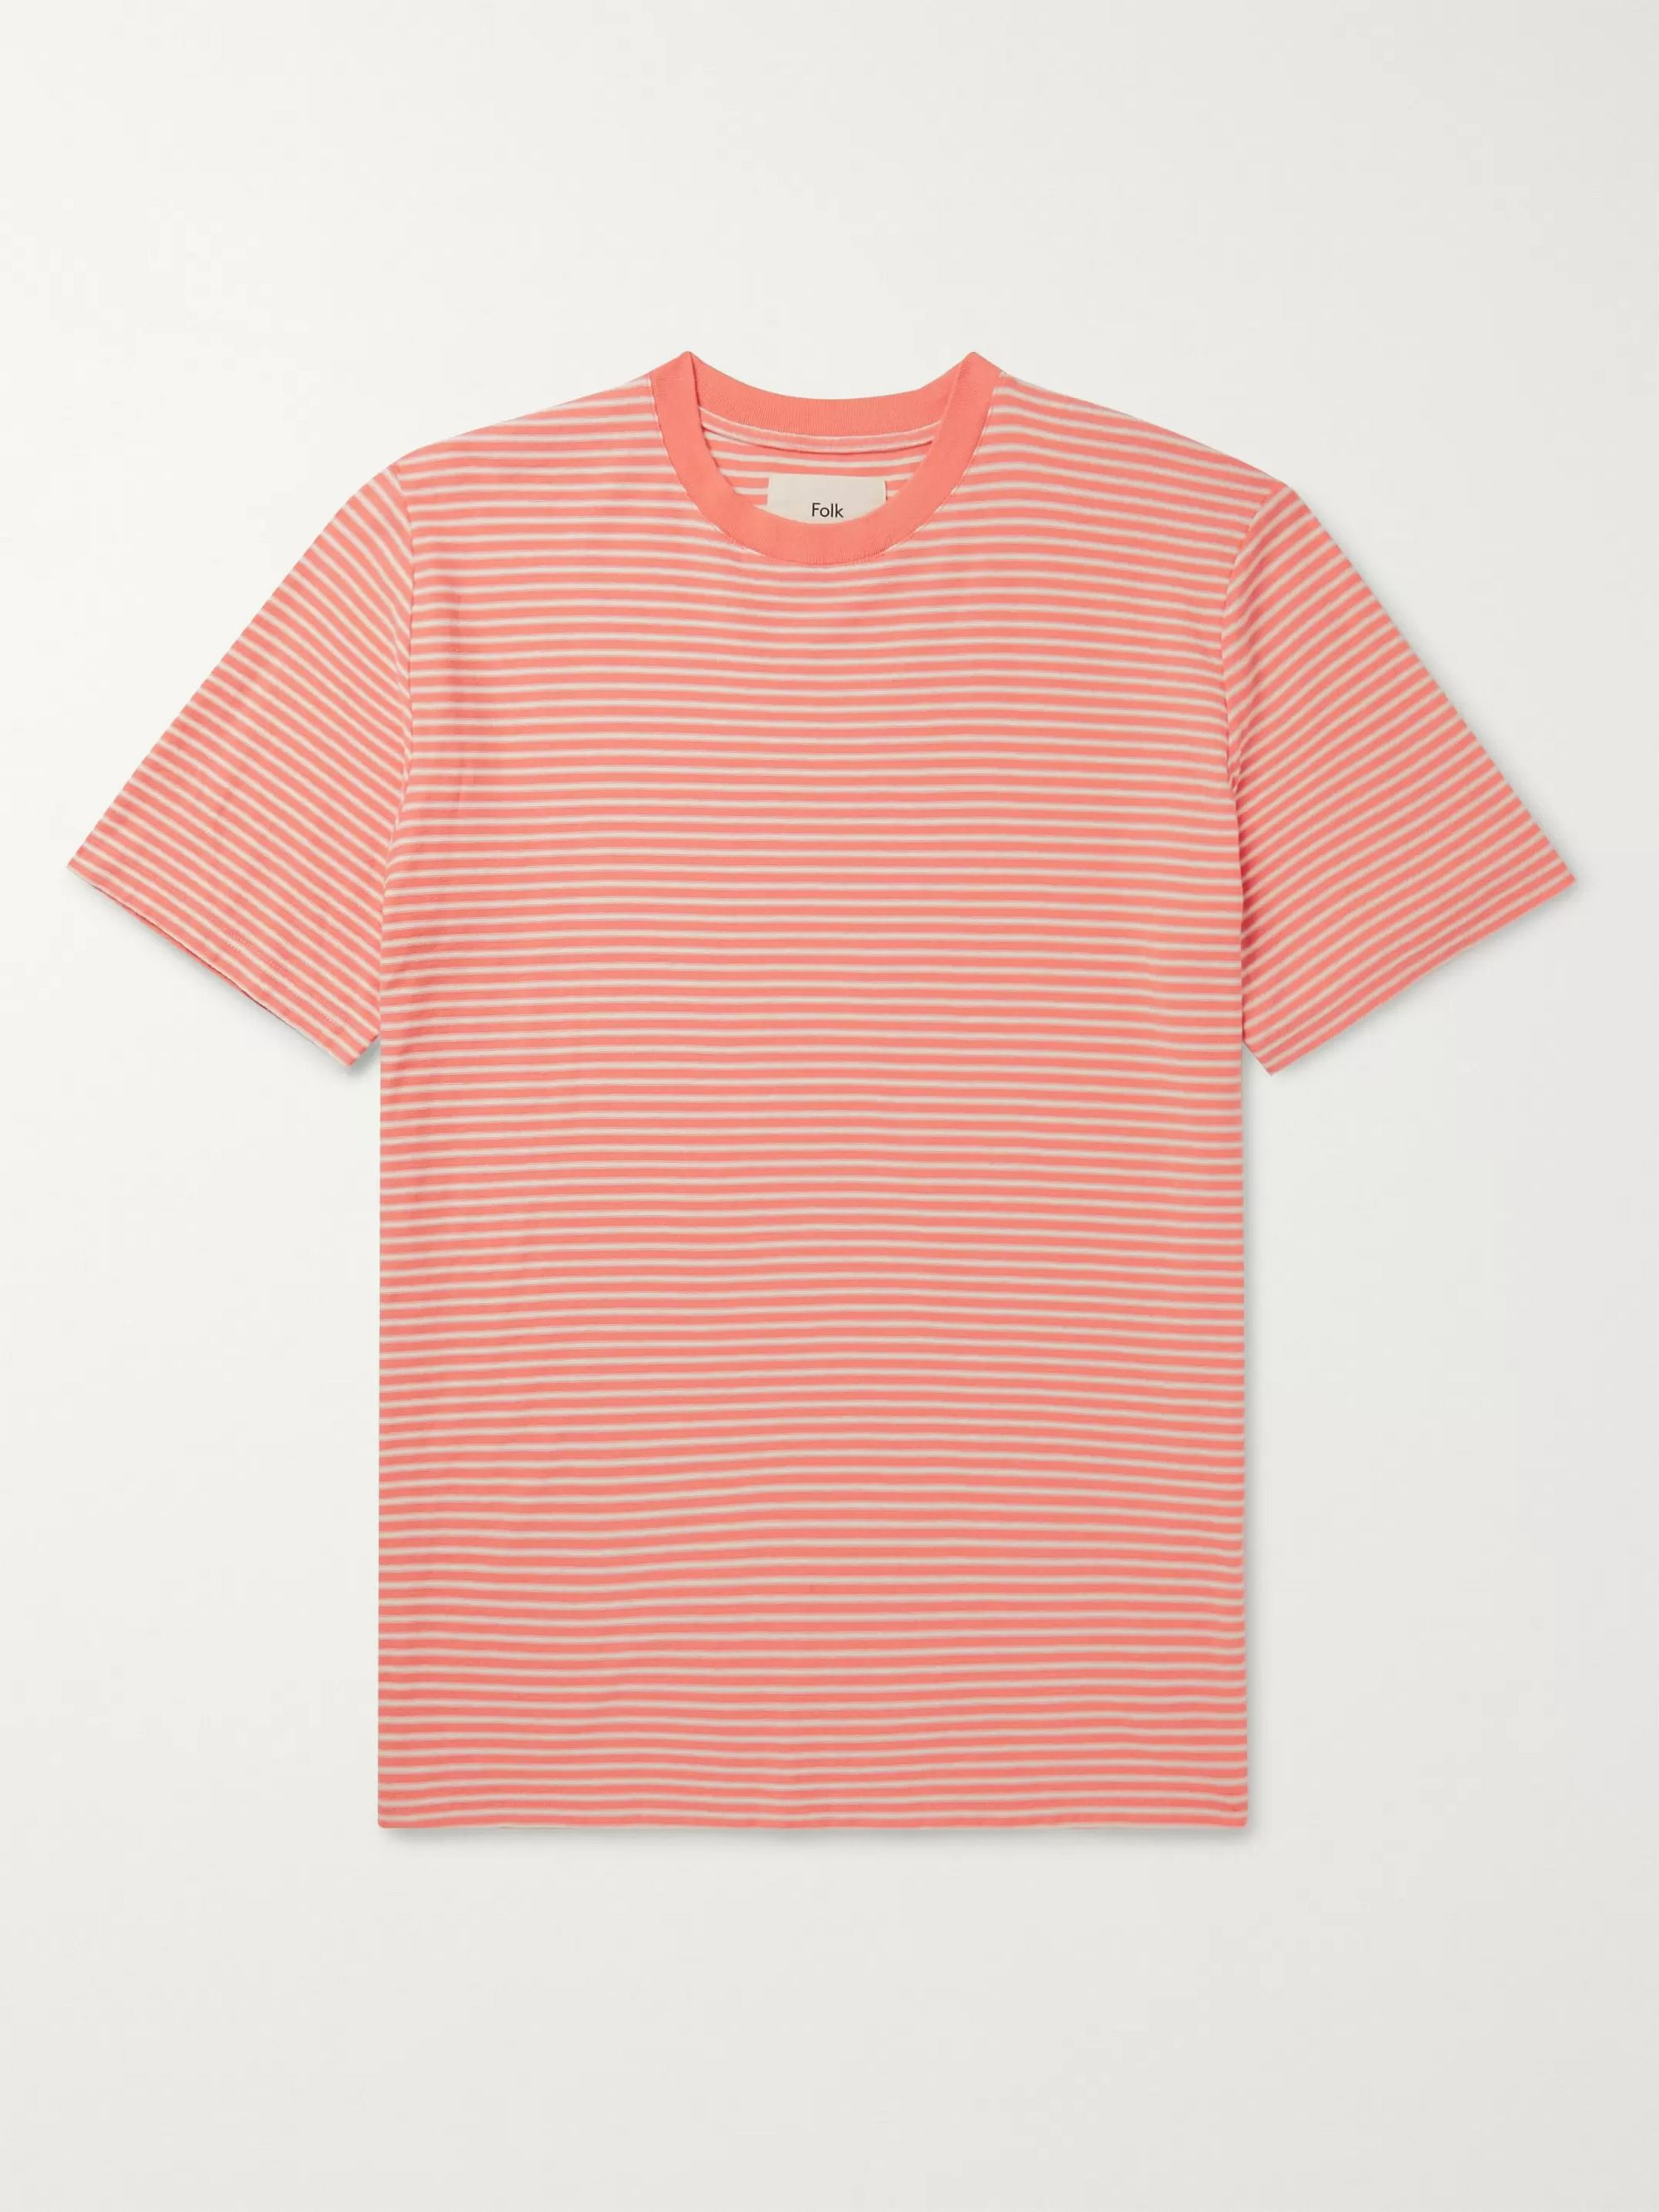 Folk Striped Cotton-Jersey T-Shirt